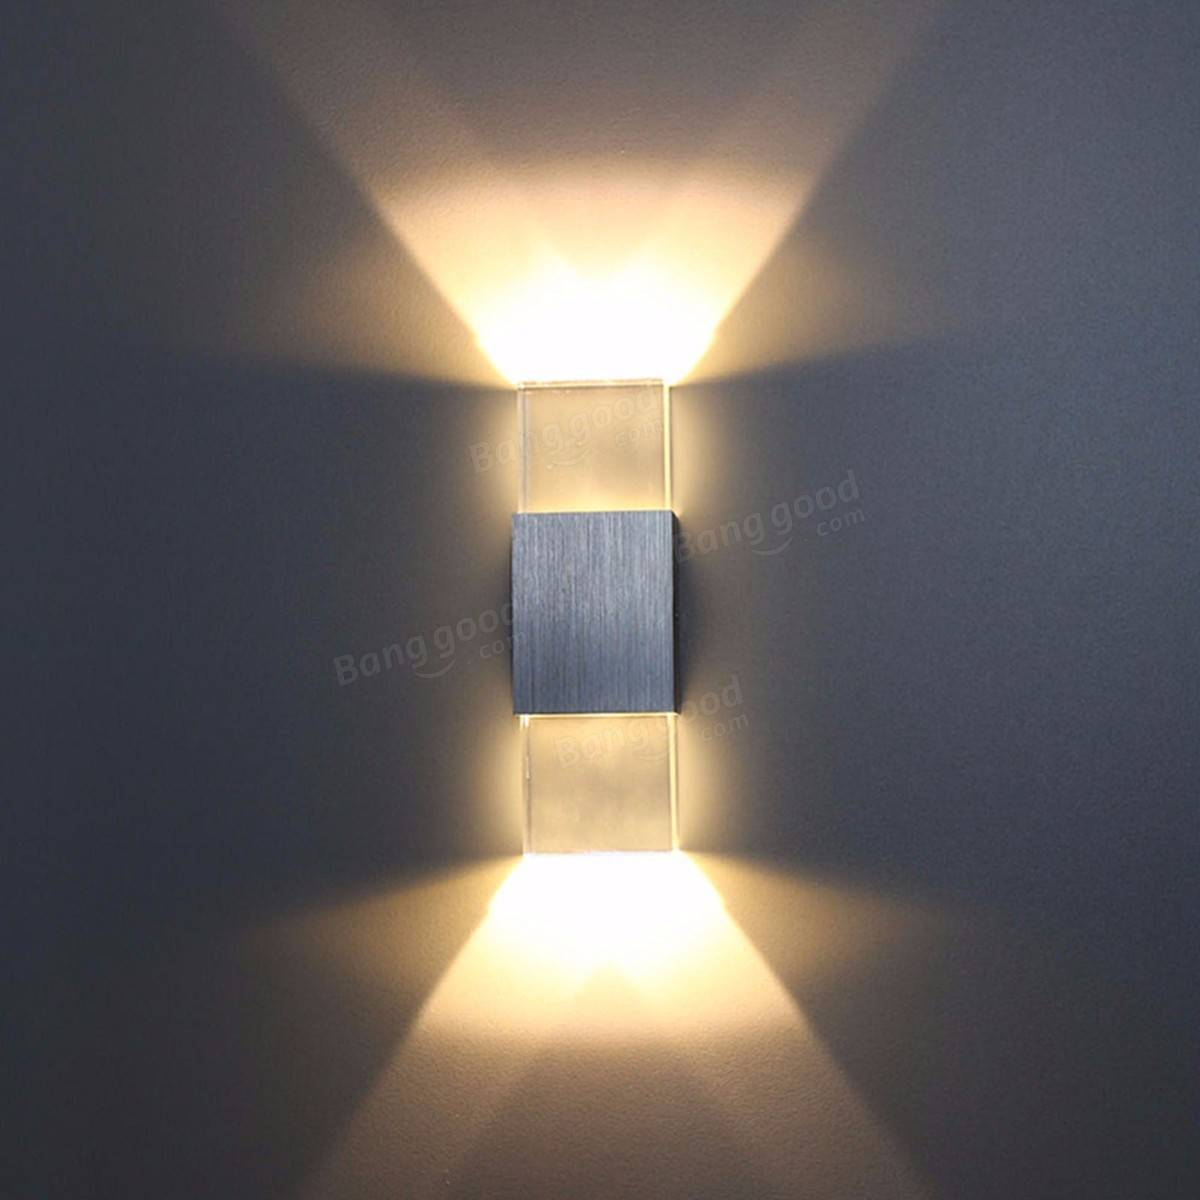 Bedroom modern wall lights - 2w Modern Led Wall Light Up Down Indoor Sconce Bedroom Lamp Fixture Warm White